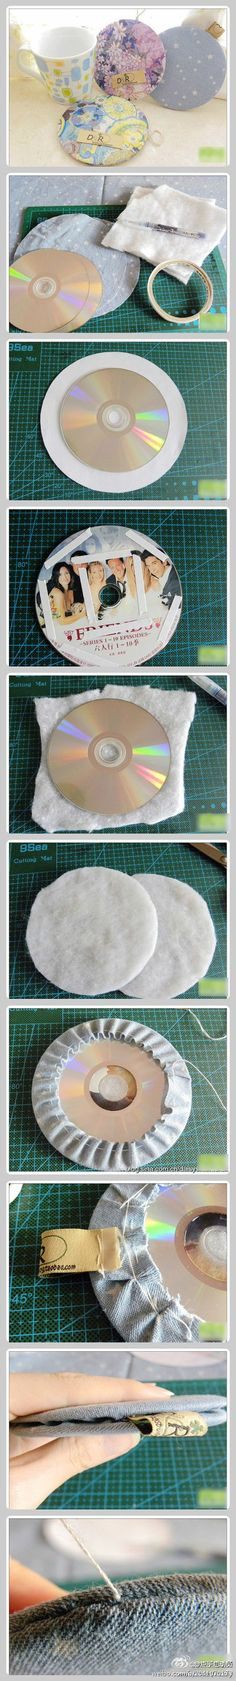 DIY coasters using old CDs. I'm just going to use hot glue instead.